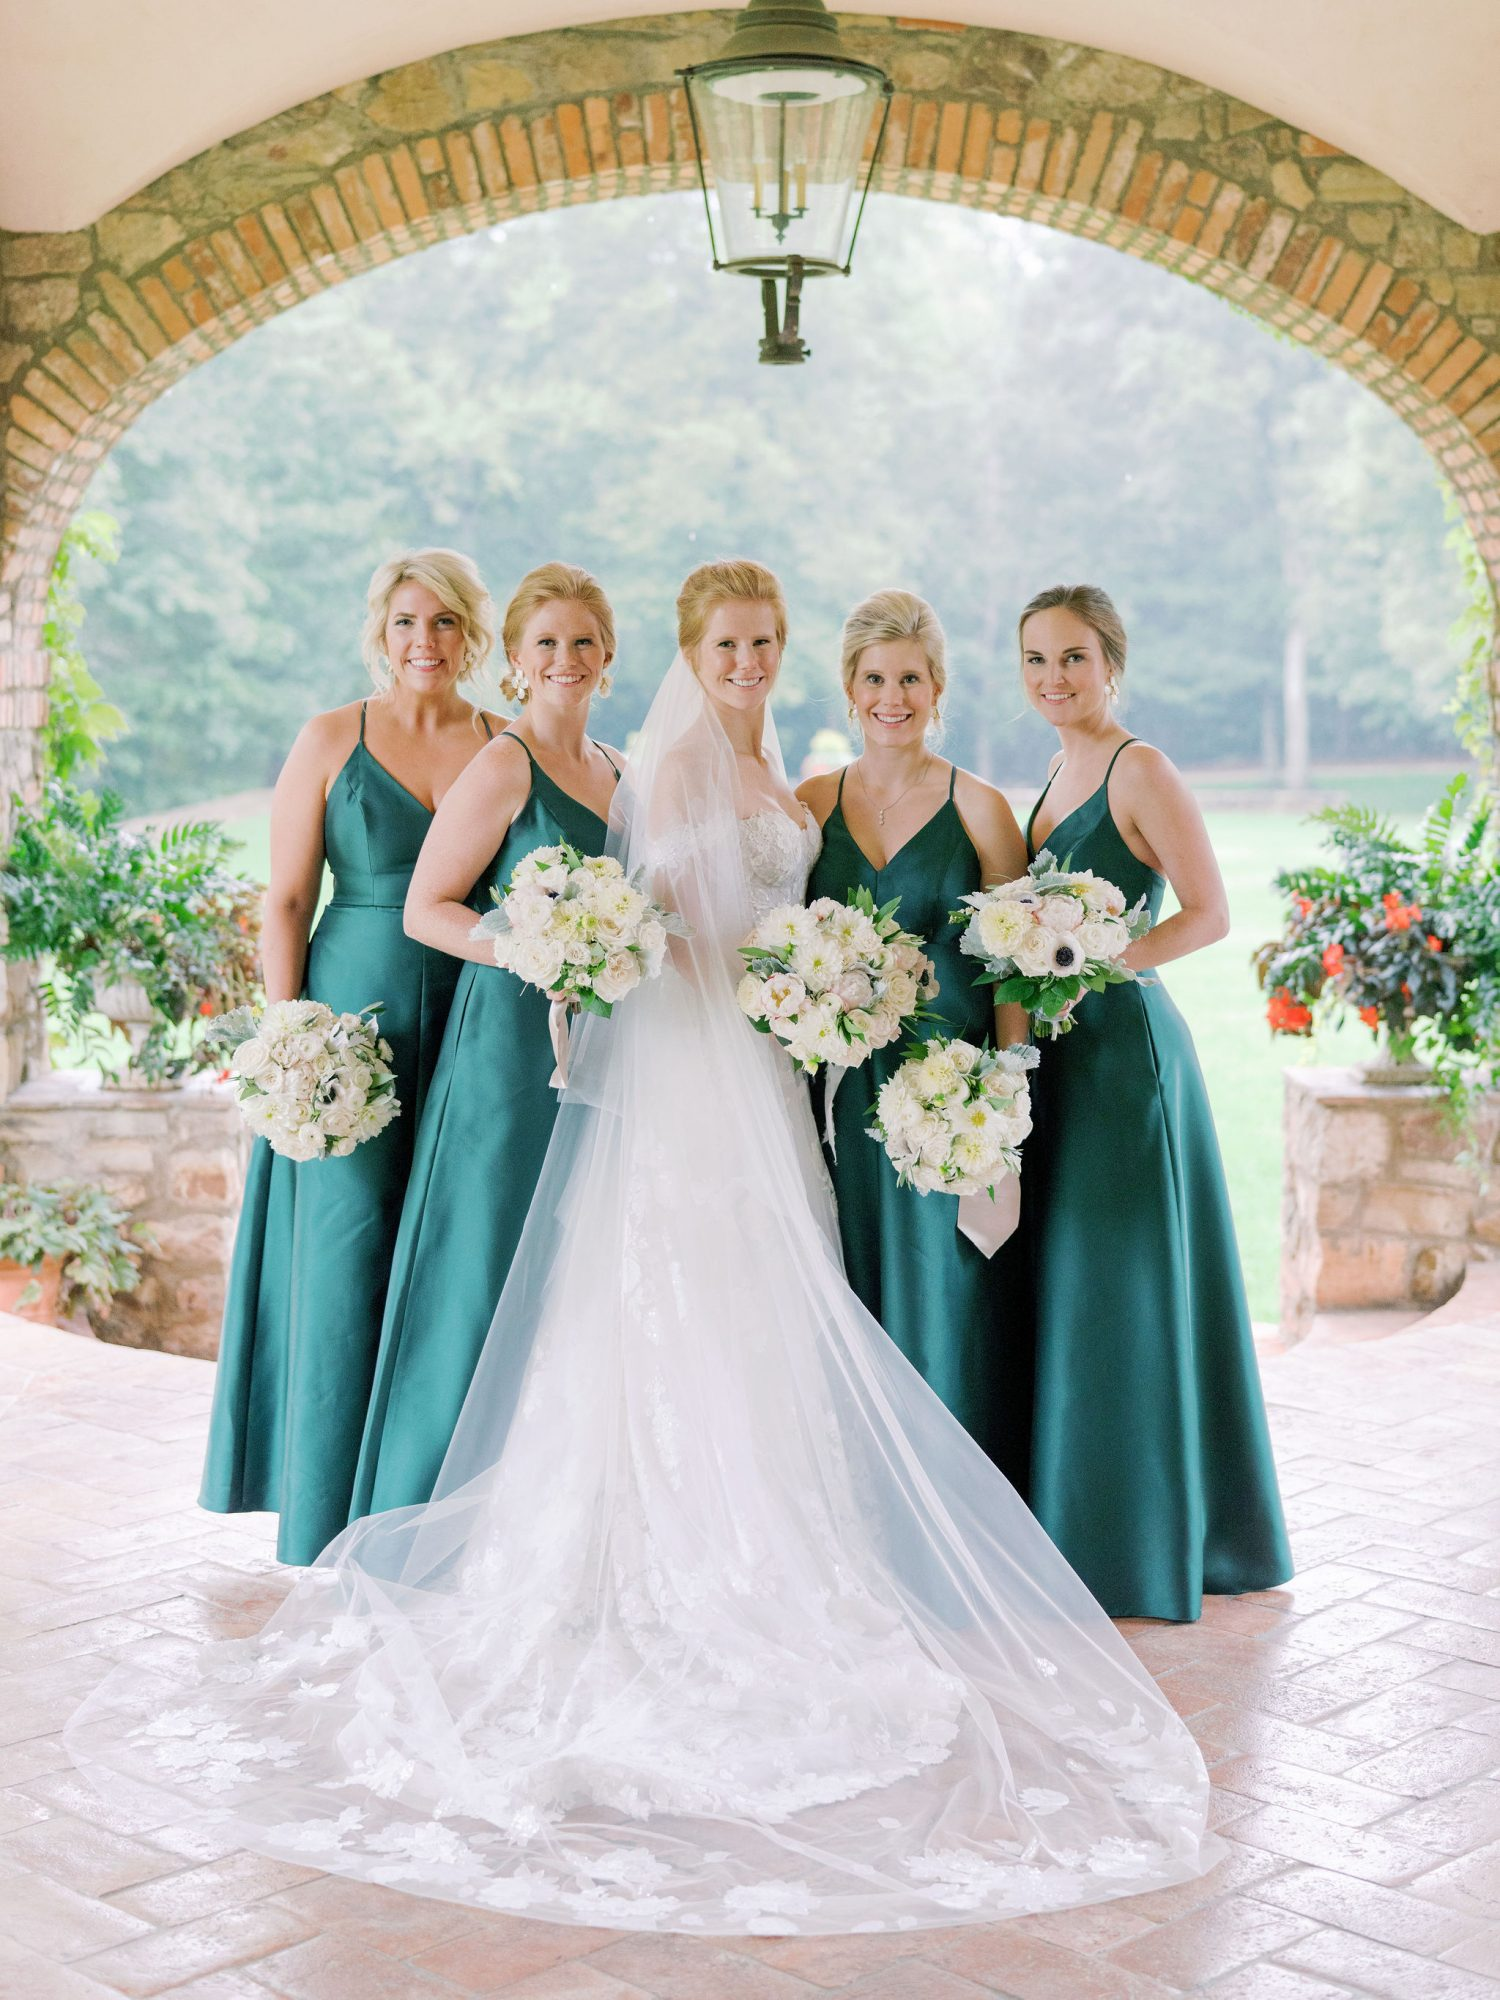 bride with 4 bridesmaids wearing emerald green dresses